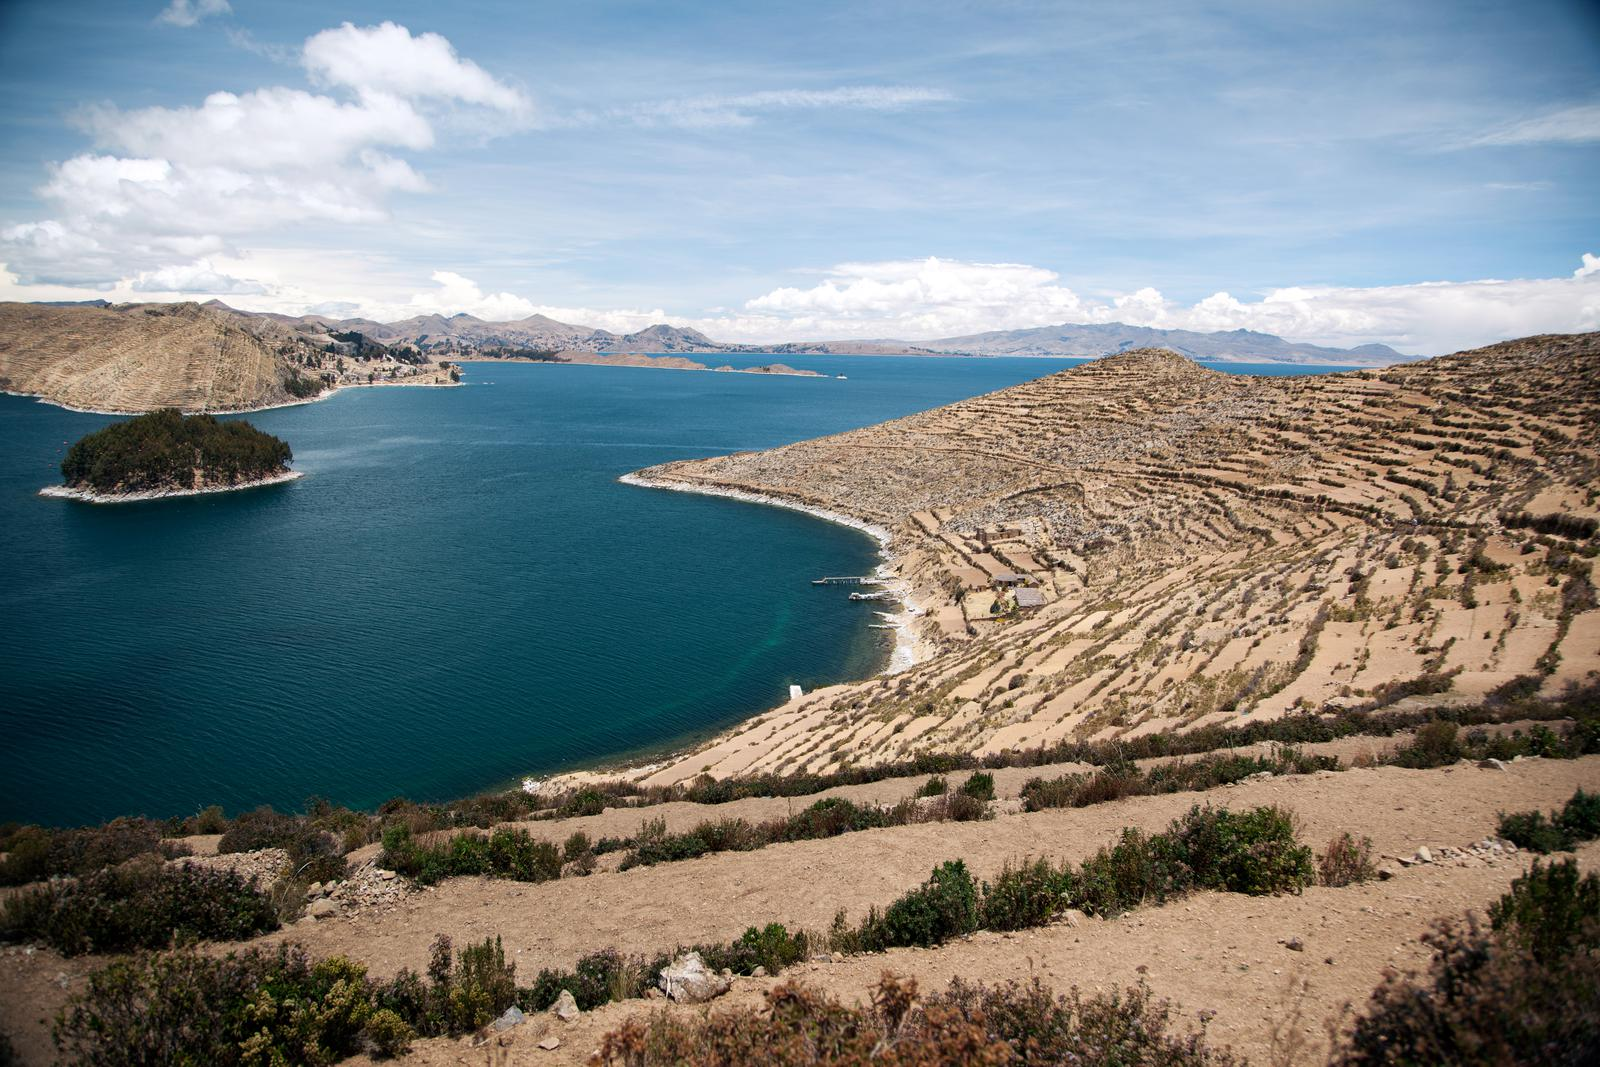 Le lac Titicaca, en Bolivie - Crédit: New York Times